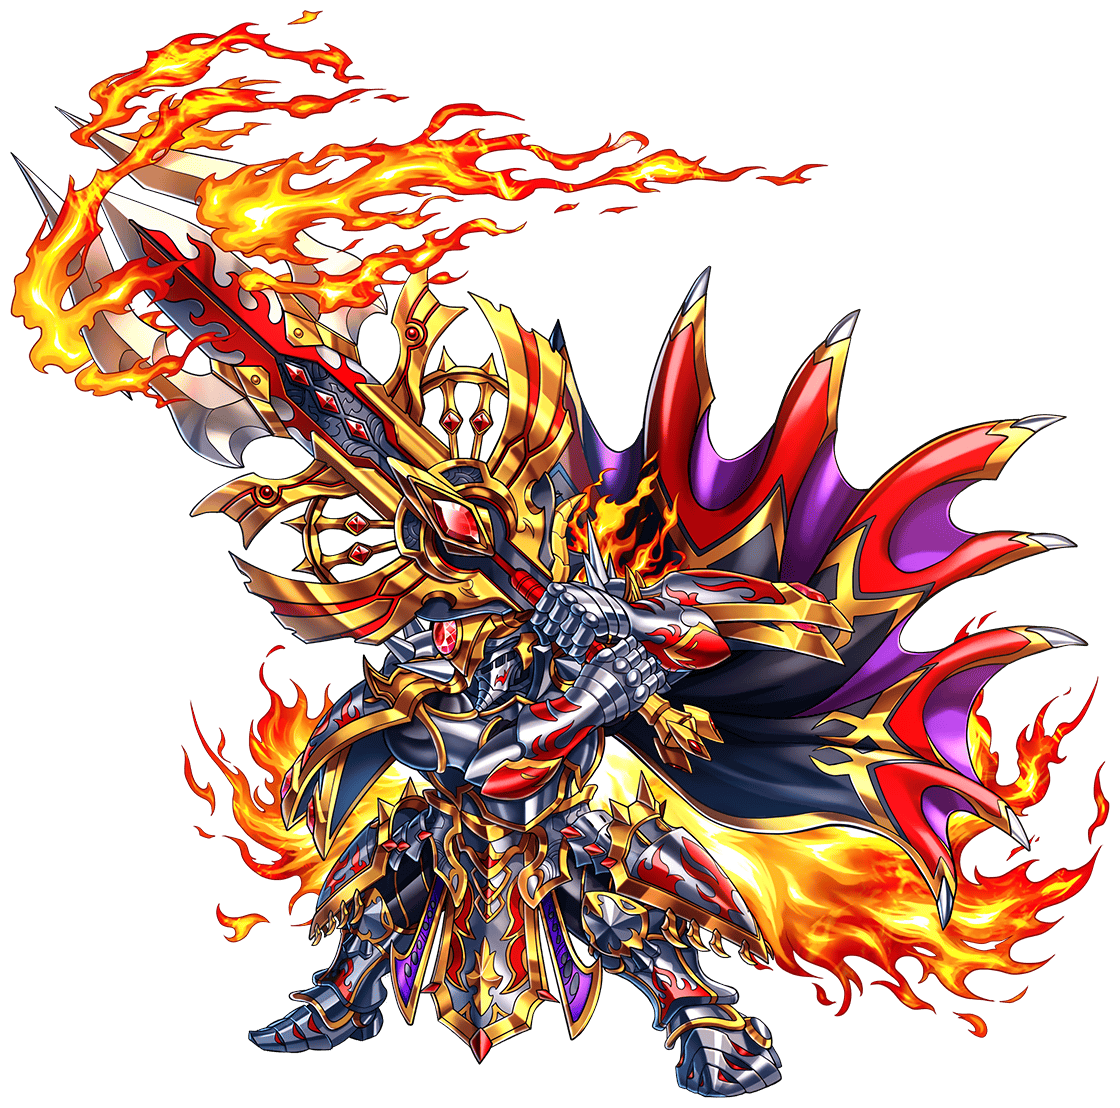 Grand Gaia Chronicles | Brave Frontier Wiki | Fandom